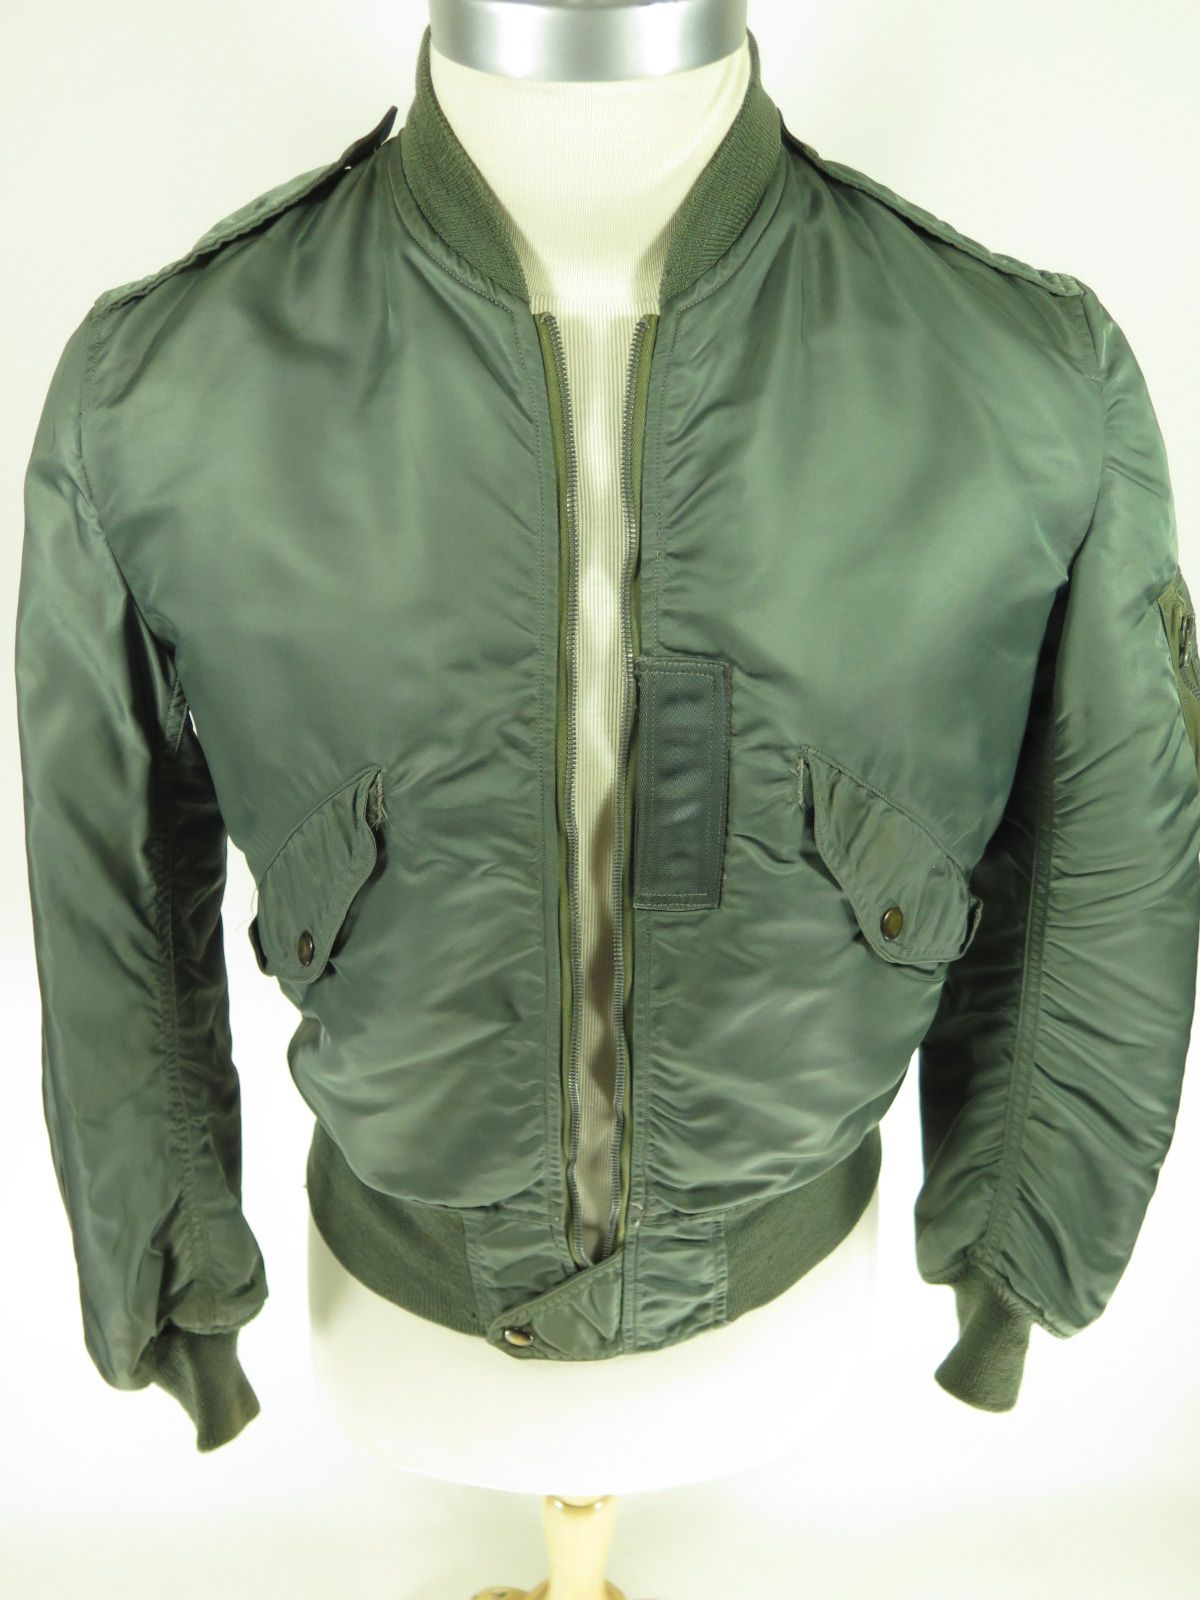 Vintage Skyline Type L 2b Flight Jacket Sage Green Find More Men S And Women S Authentic Vintage Clothing At The Clothing Vaul Jackets Clothes Vintage Outfits [ 1600 x 1200 Pixel ]